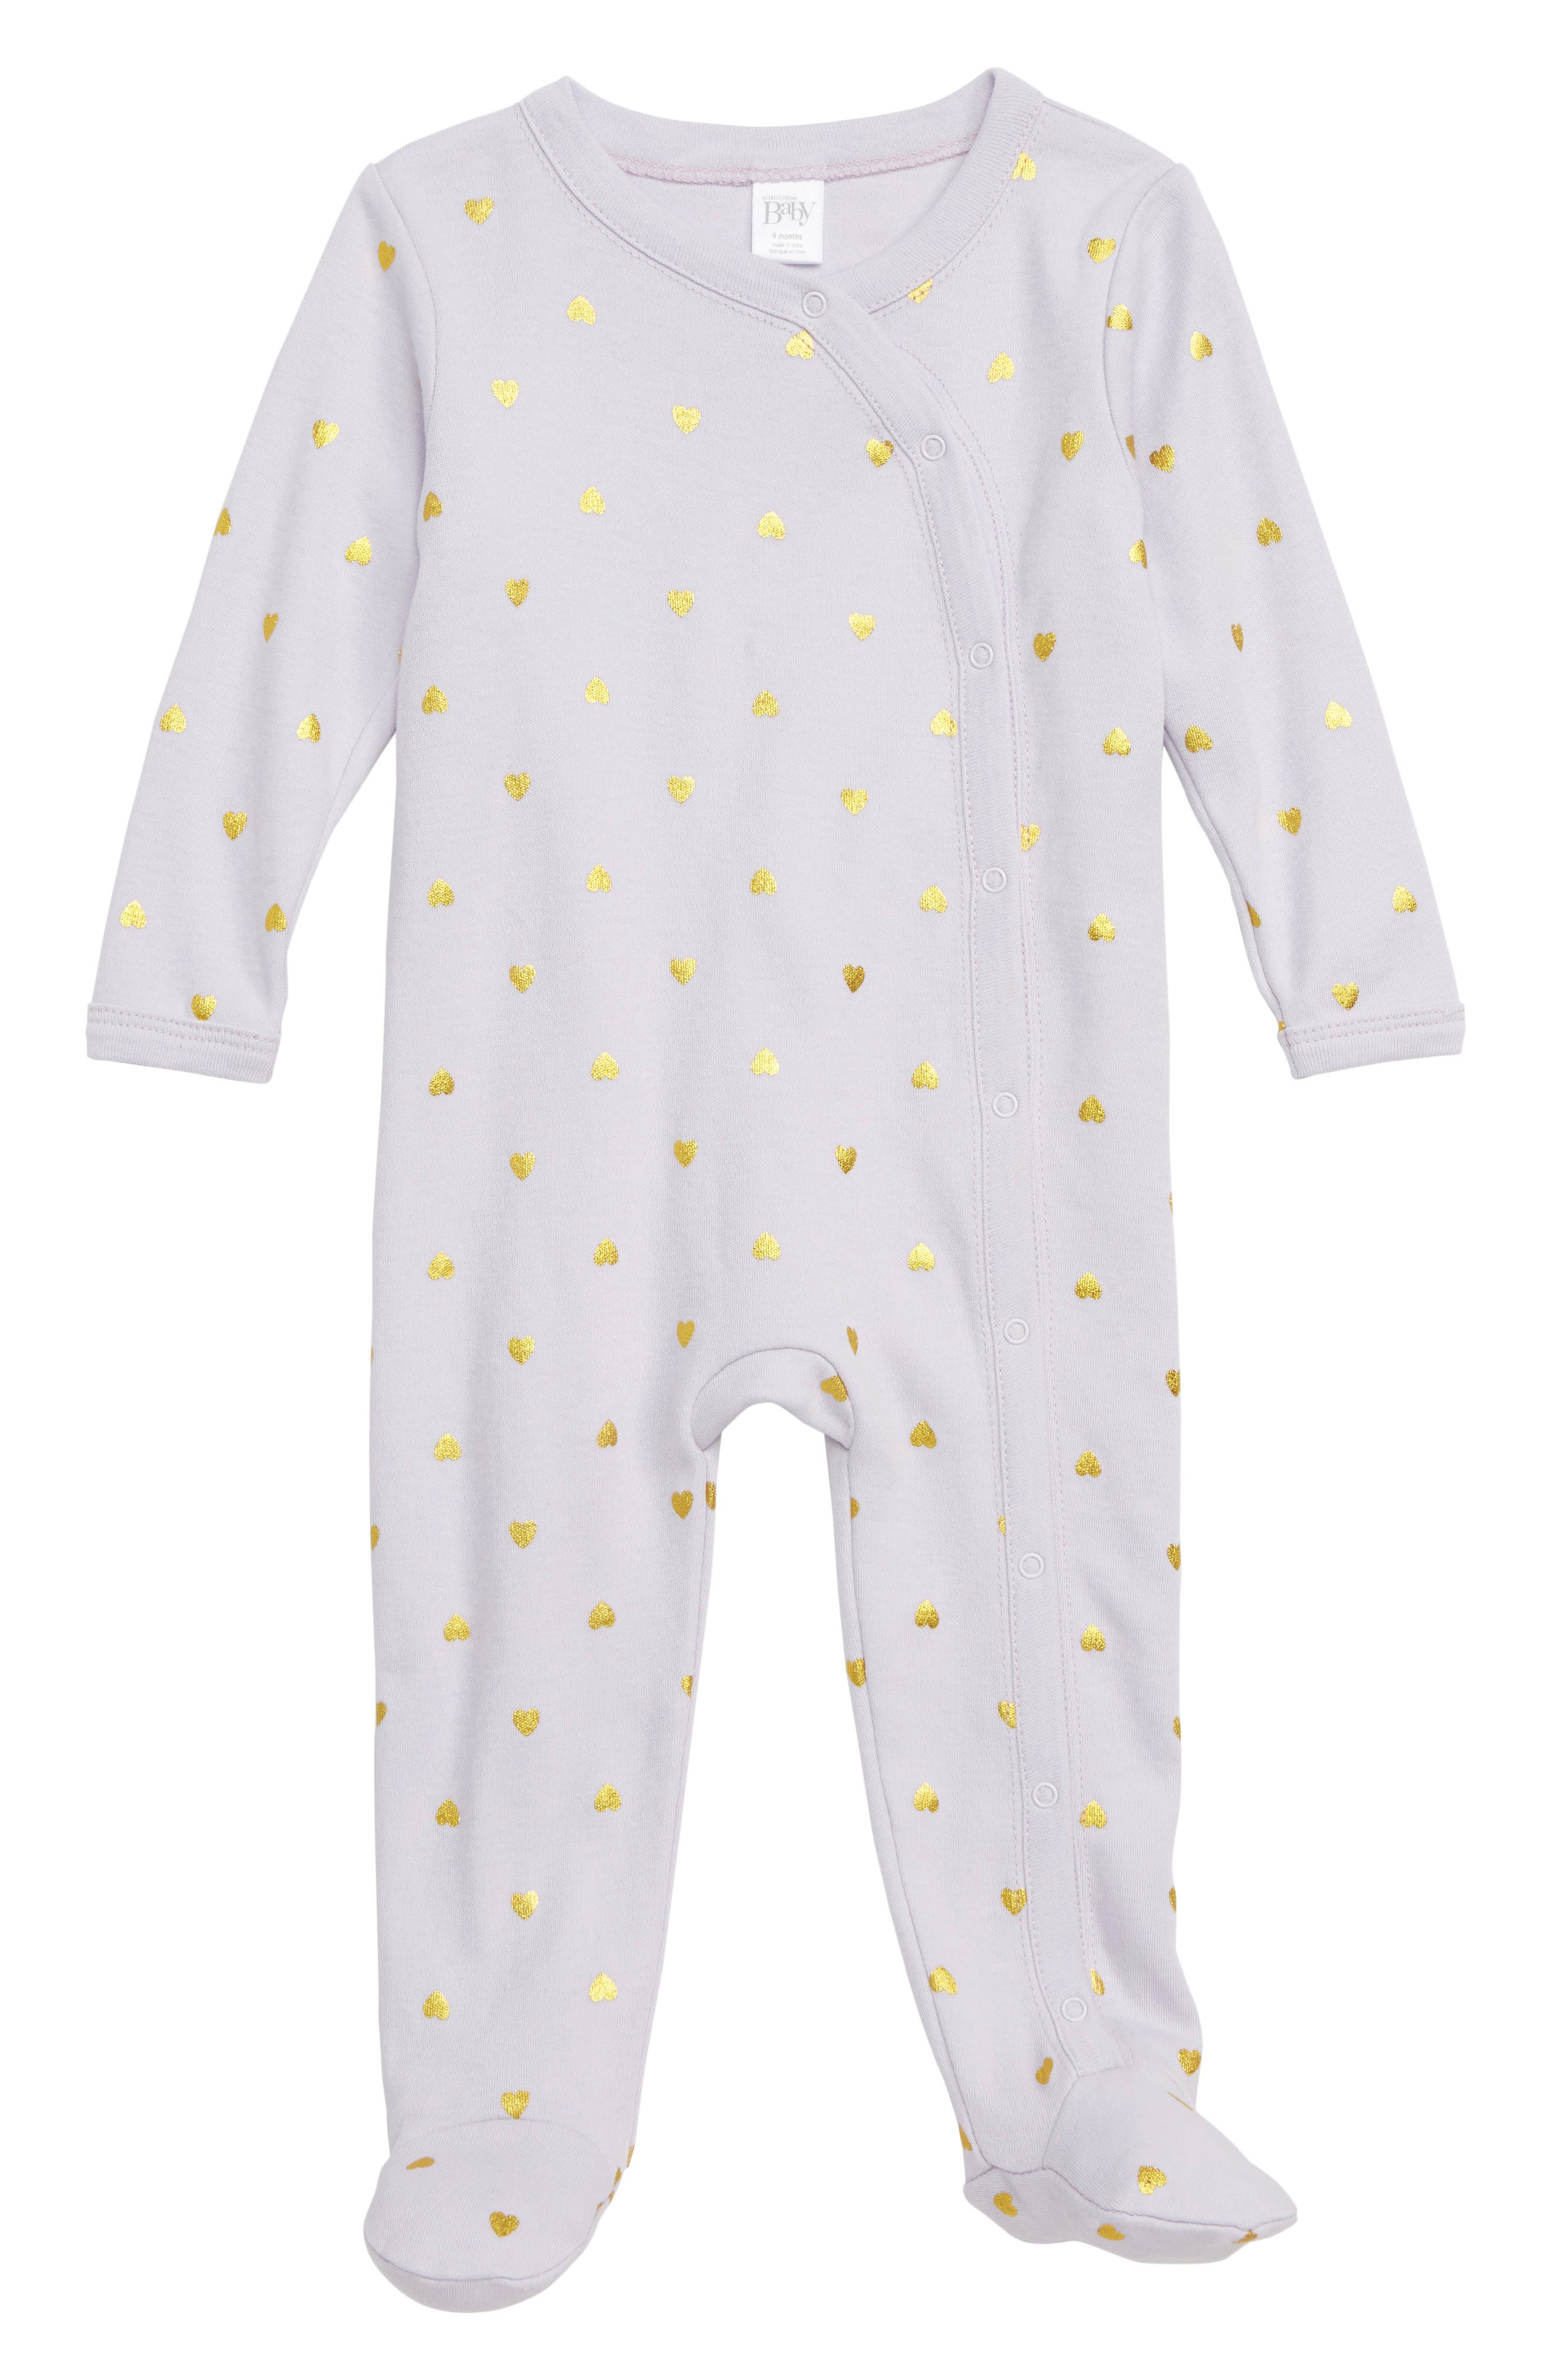 NORDSTROM BABY,                             Print Footie,                             Main thumbnail 1, color,                             530